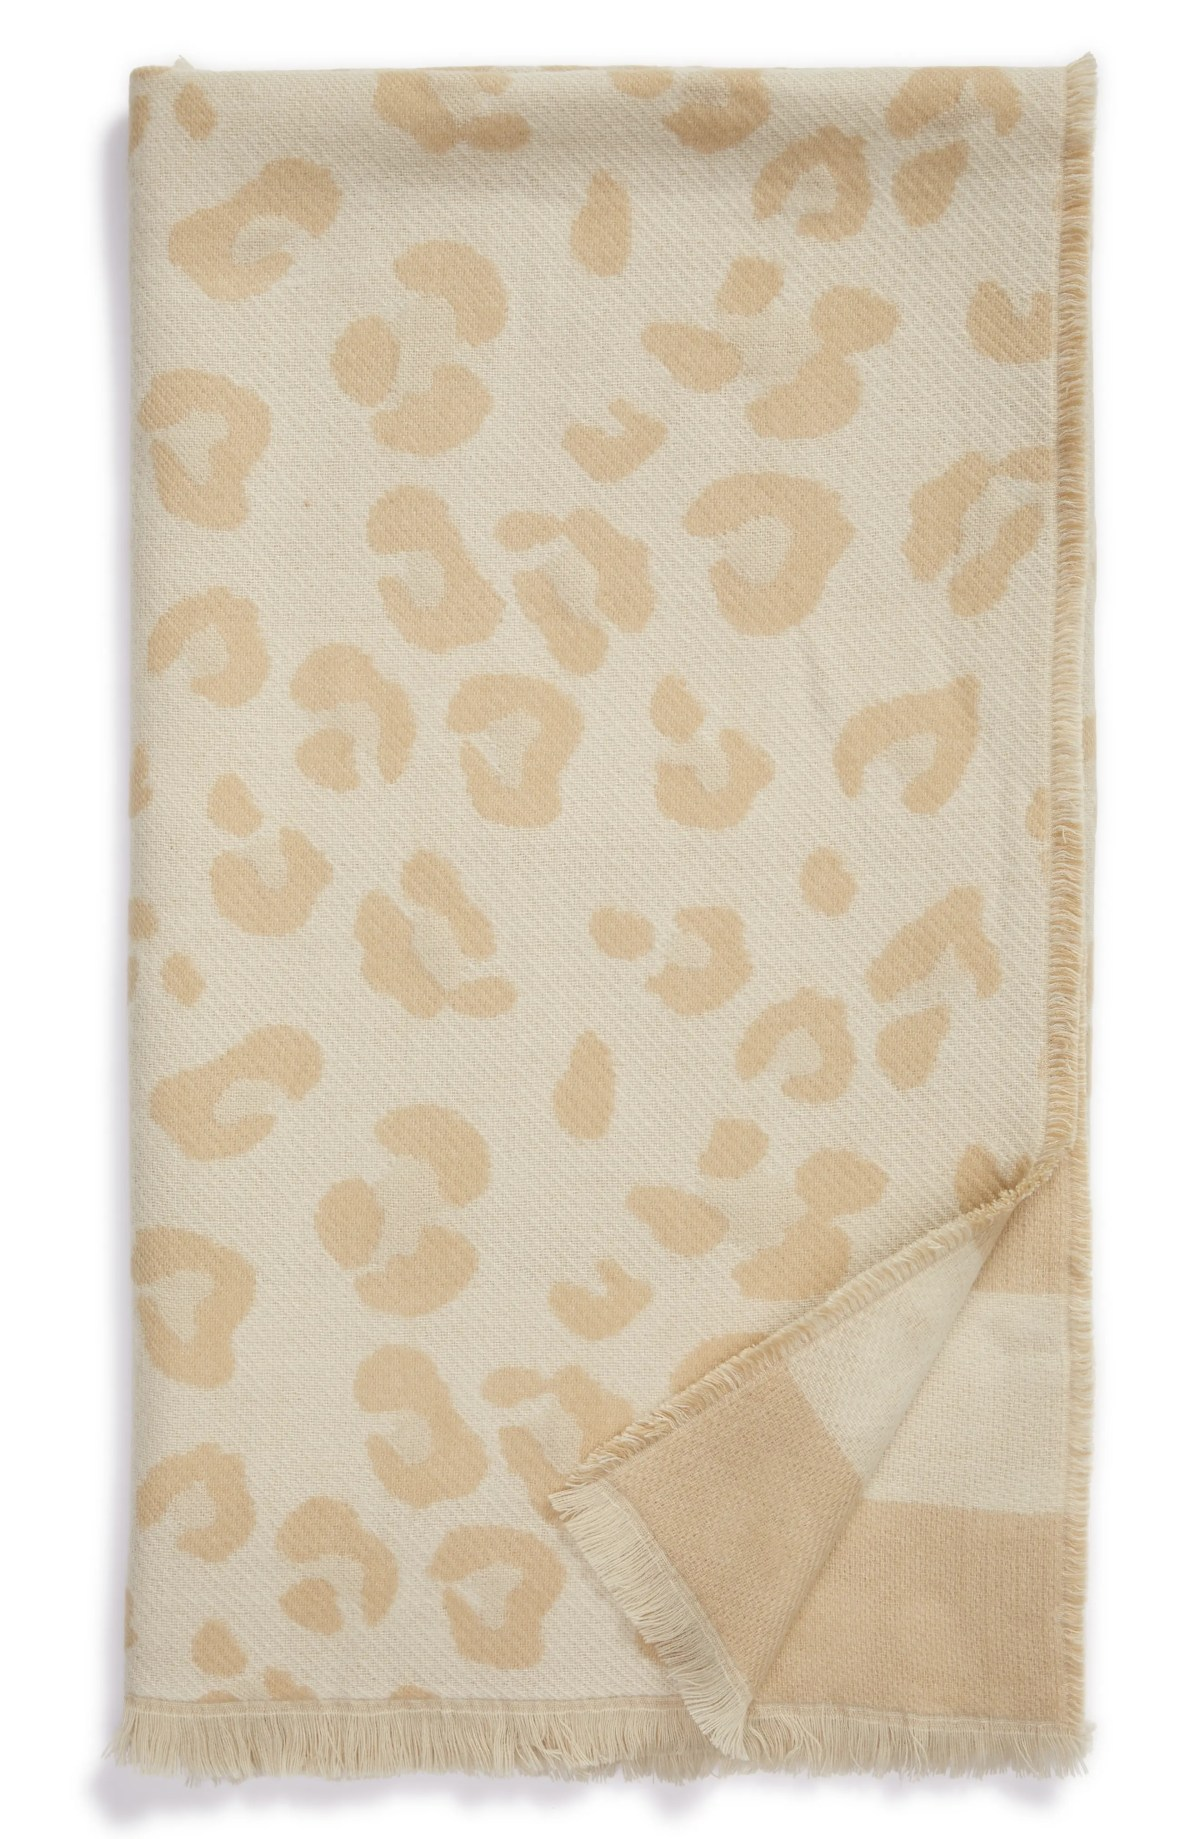 NORDSTROM Reversible Jacquard Throw Blanket, Main, color, BEIGE OATMEAL ANIMAL MULTI